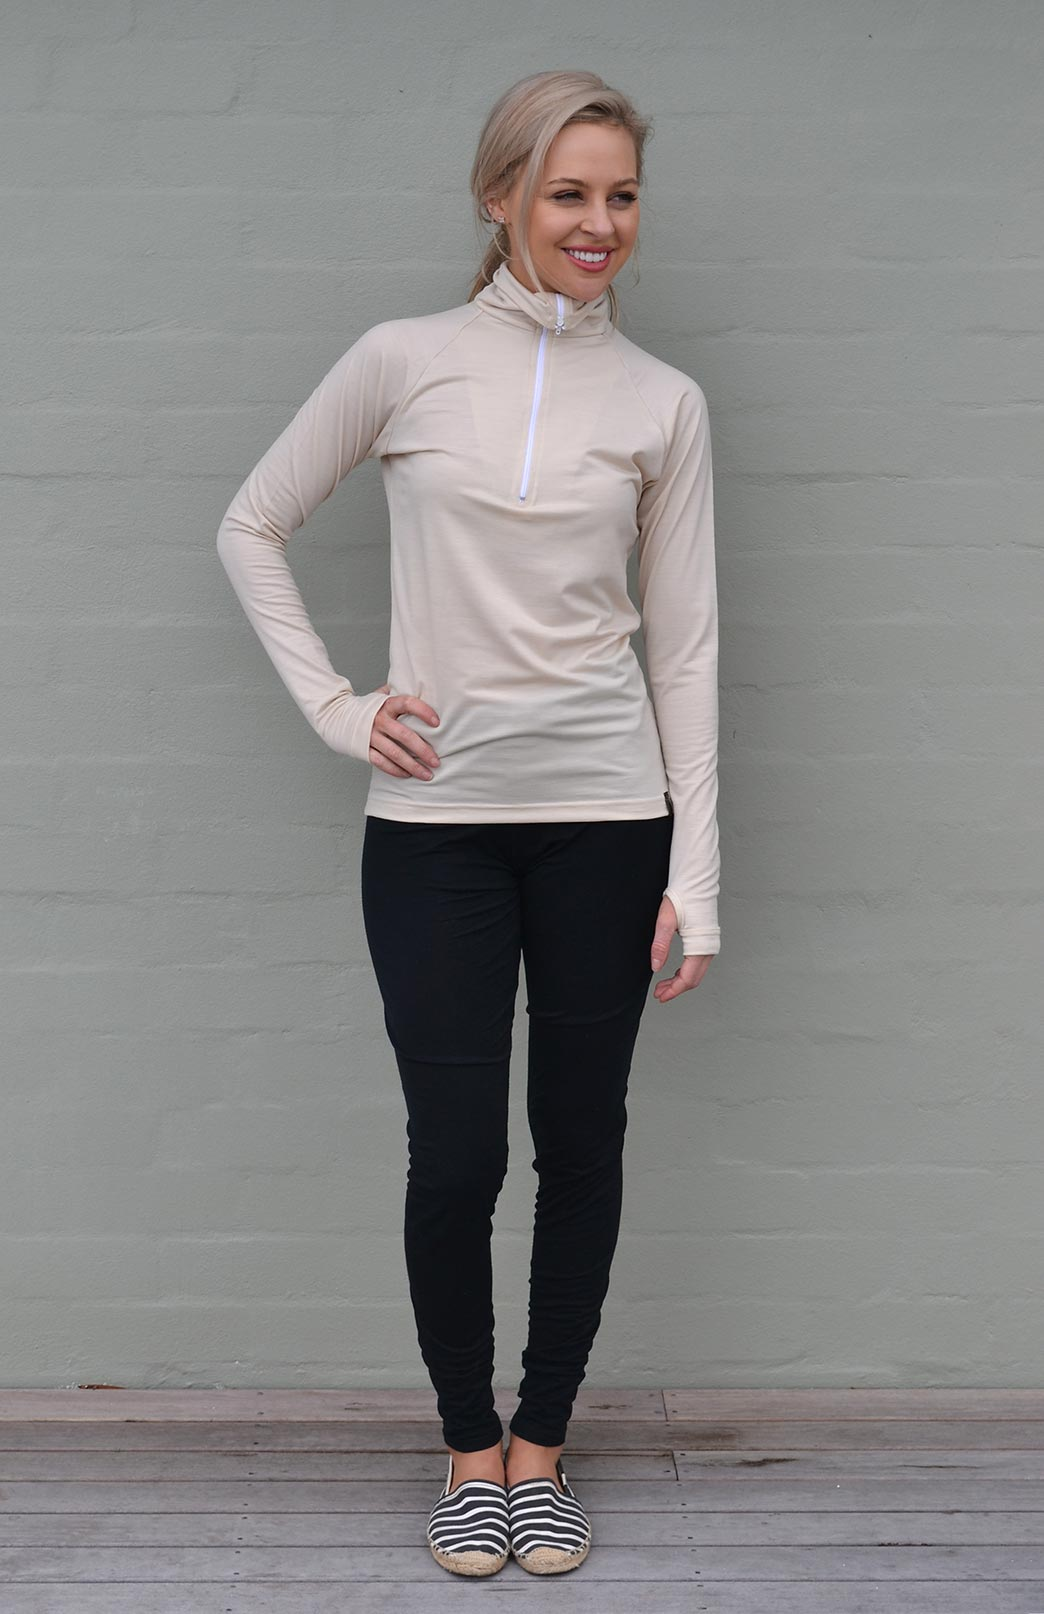 Zip Neck Top - Midweight (200g) - Women's Cream Zip Neck Pull Over Style Top with thumb holes - Smitten Merino Tasmania Australia